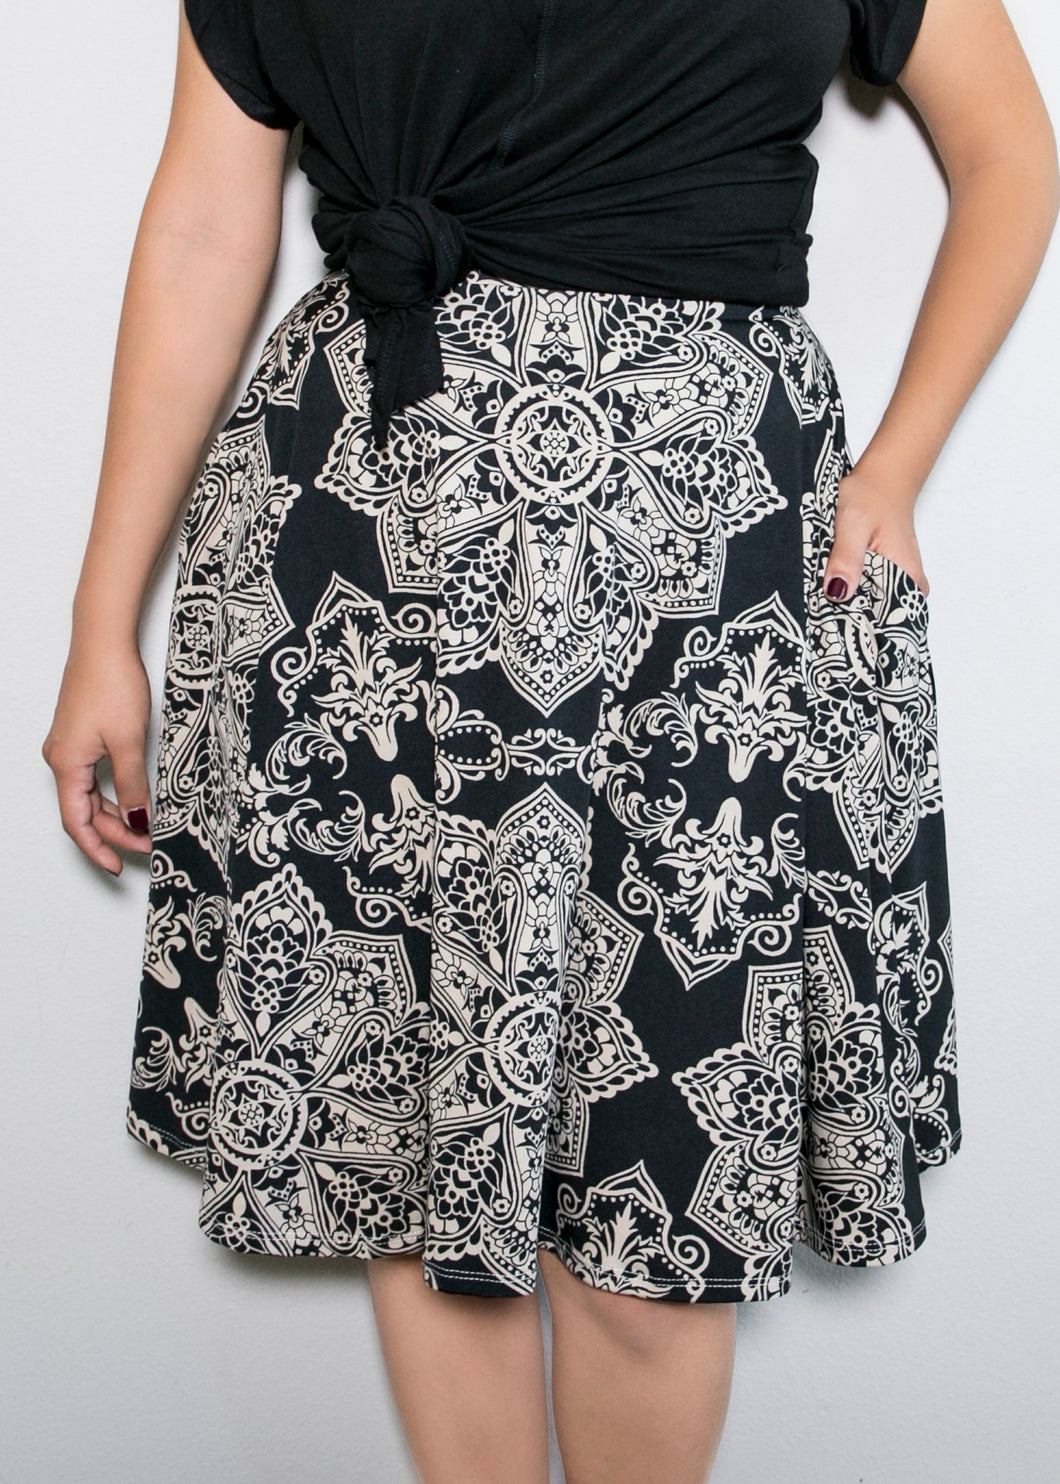 Bloom Skirt - Black and Cream - XL